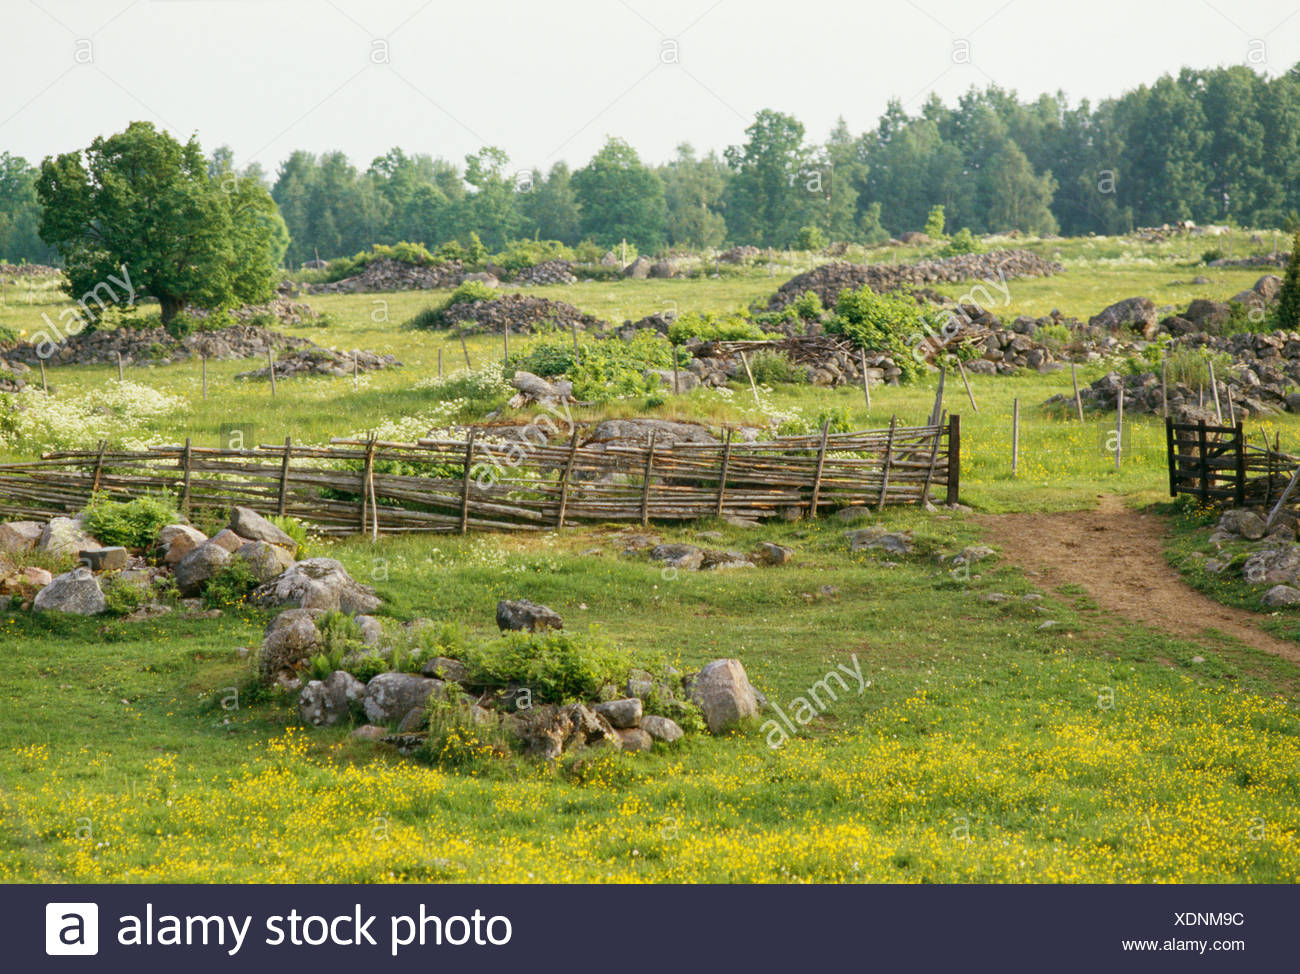 Mound of stones and pastureland, Smaland, Sweden. - Stock Image